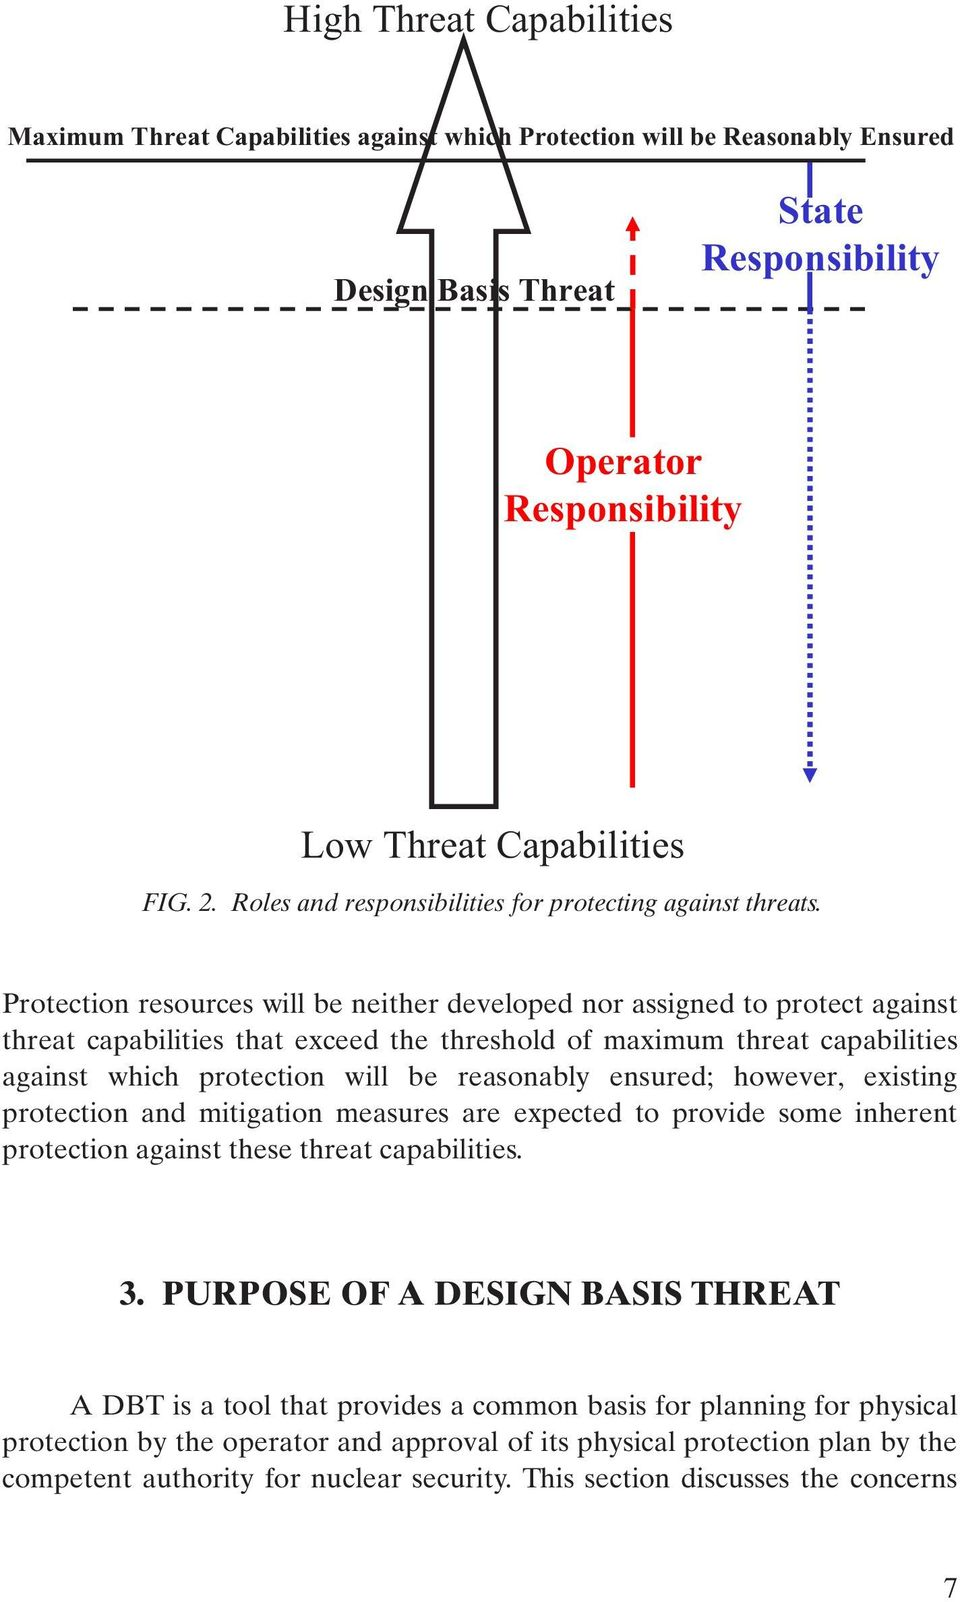 Protection resources will be neither developed nor assigned to protect against threat capabilities that exceed the threshold of maximum threat capabilities against which protection will be reasonably